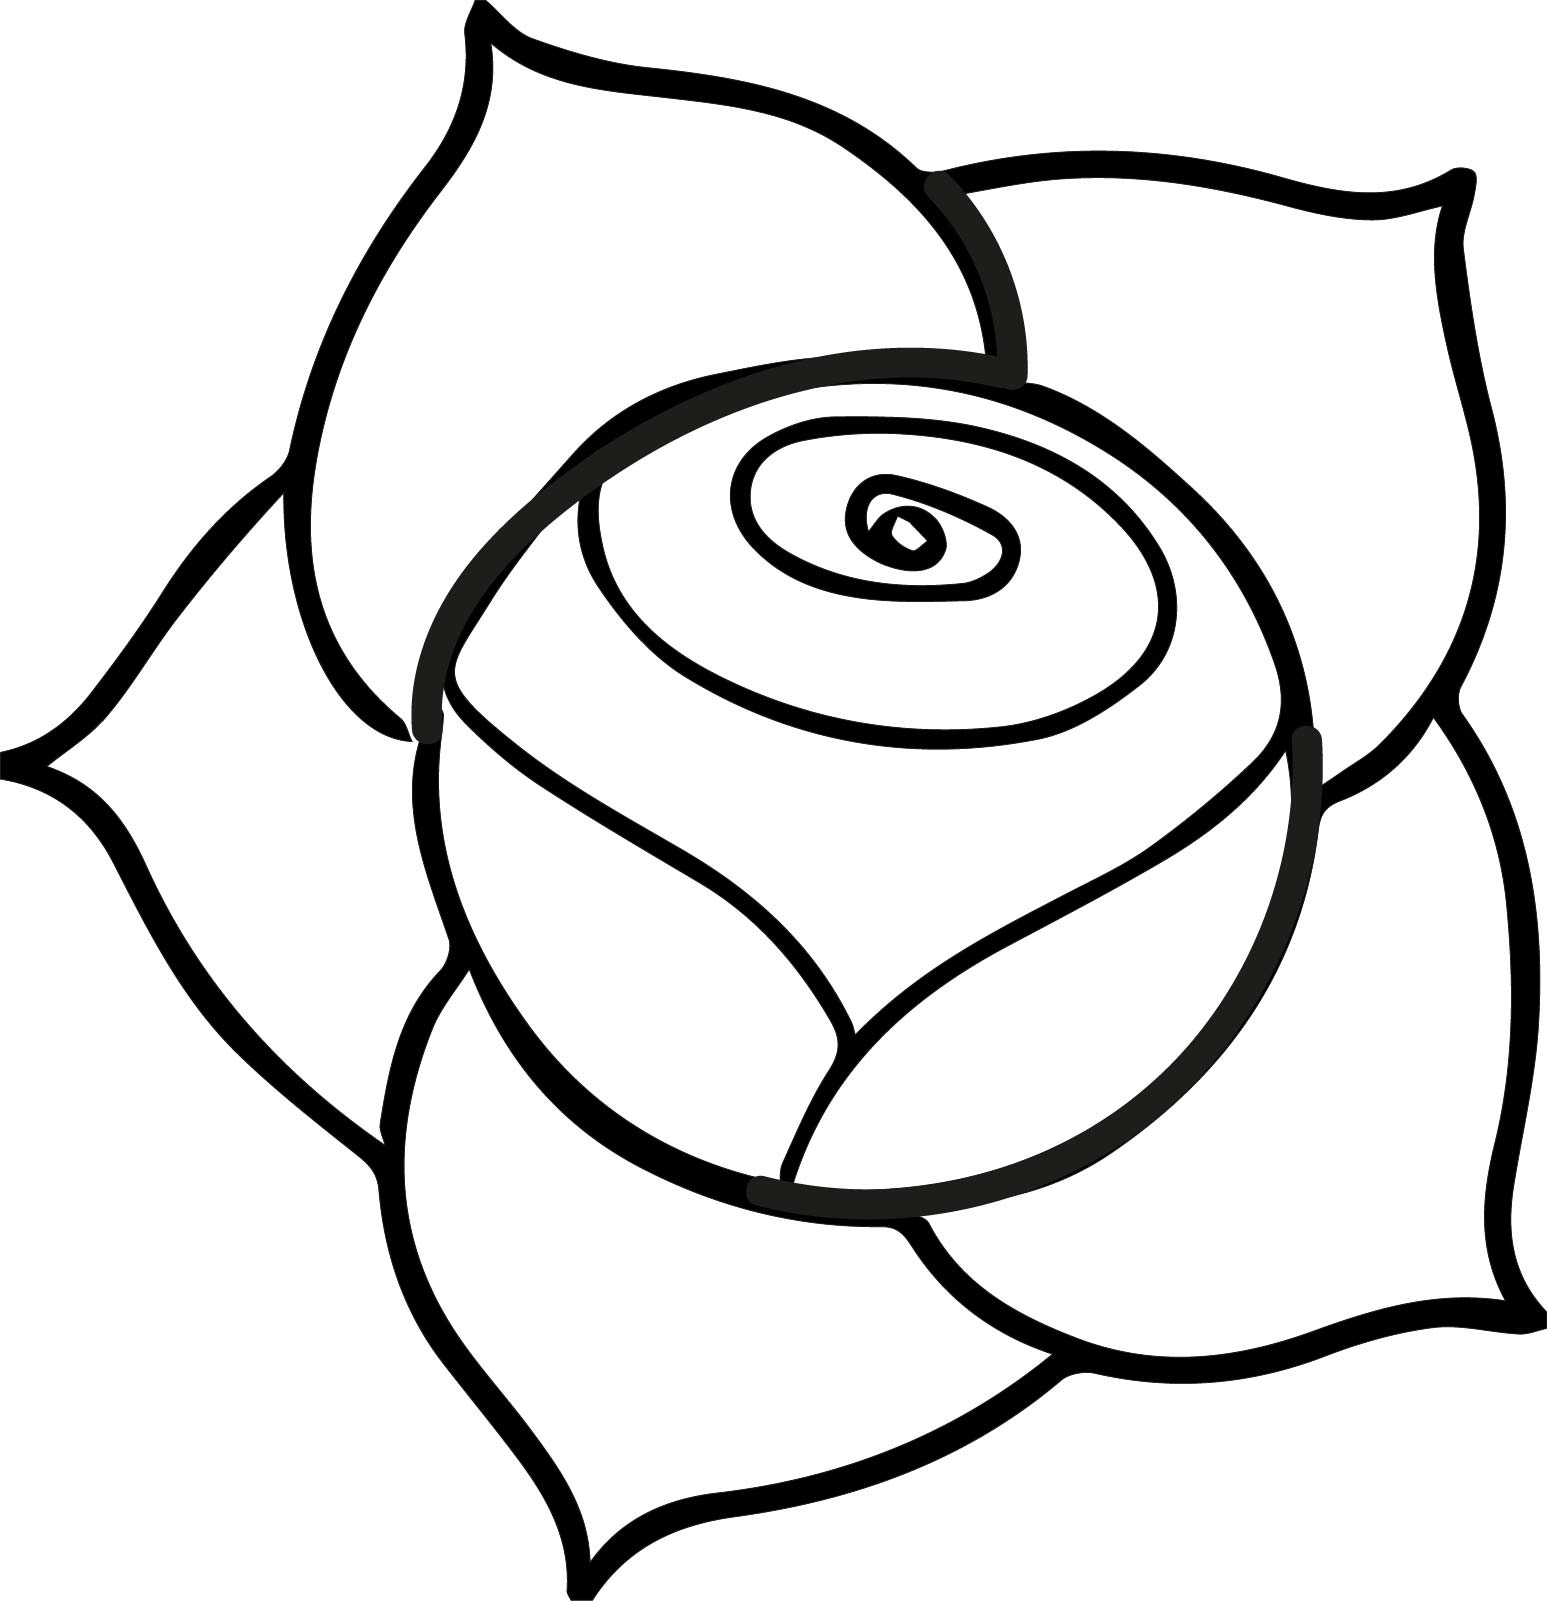 1547x1601 A Illustration Of A Pink Rose With Dark Outline On A White